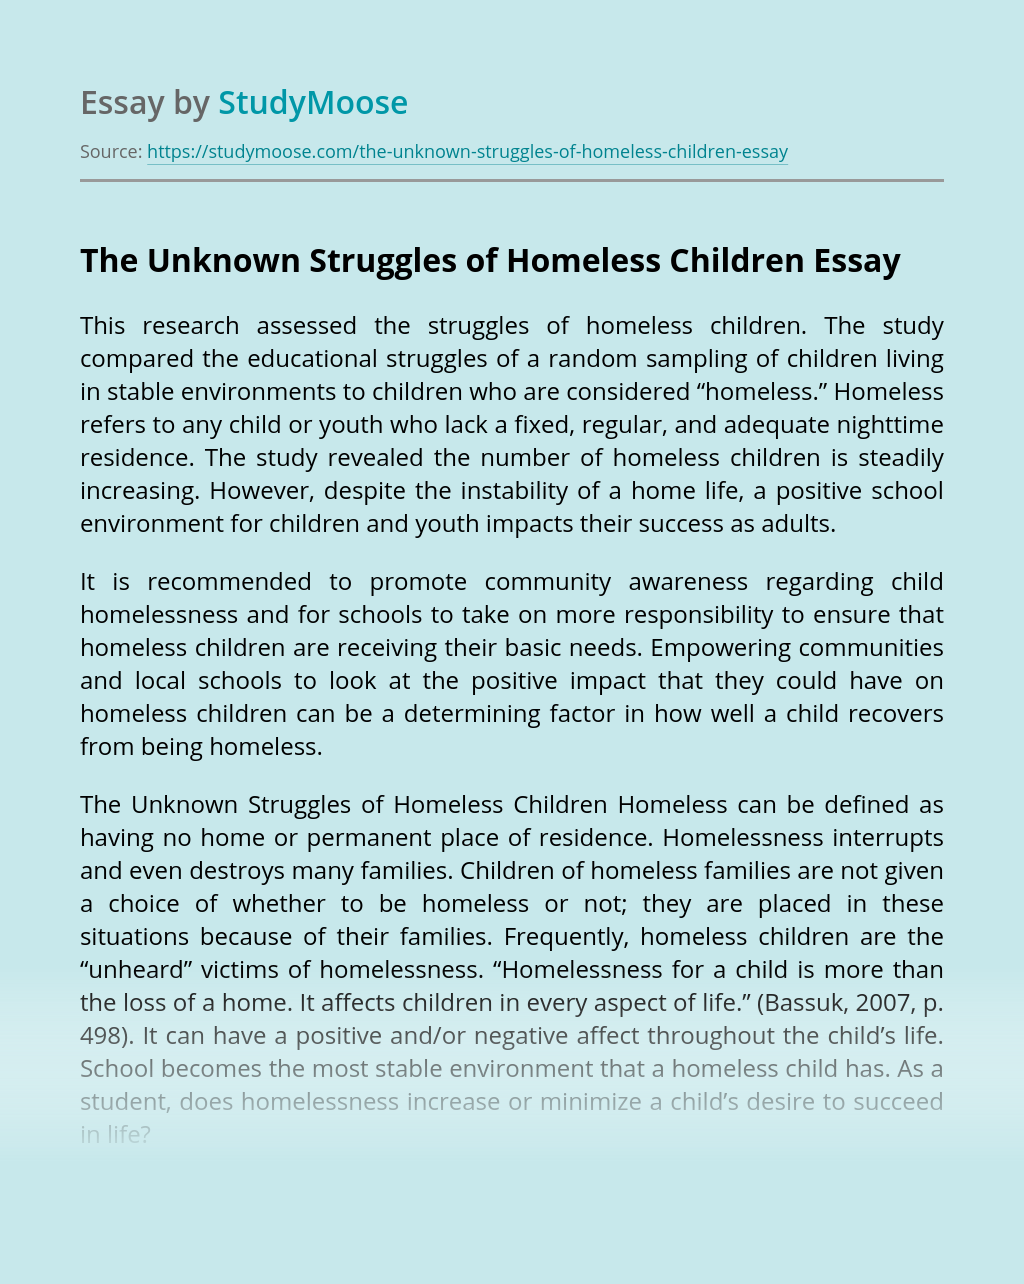 The Unknown Struggles of Homeless Children